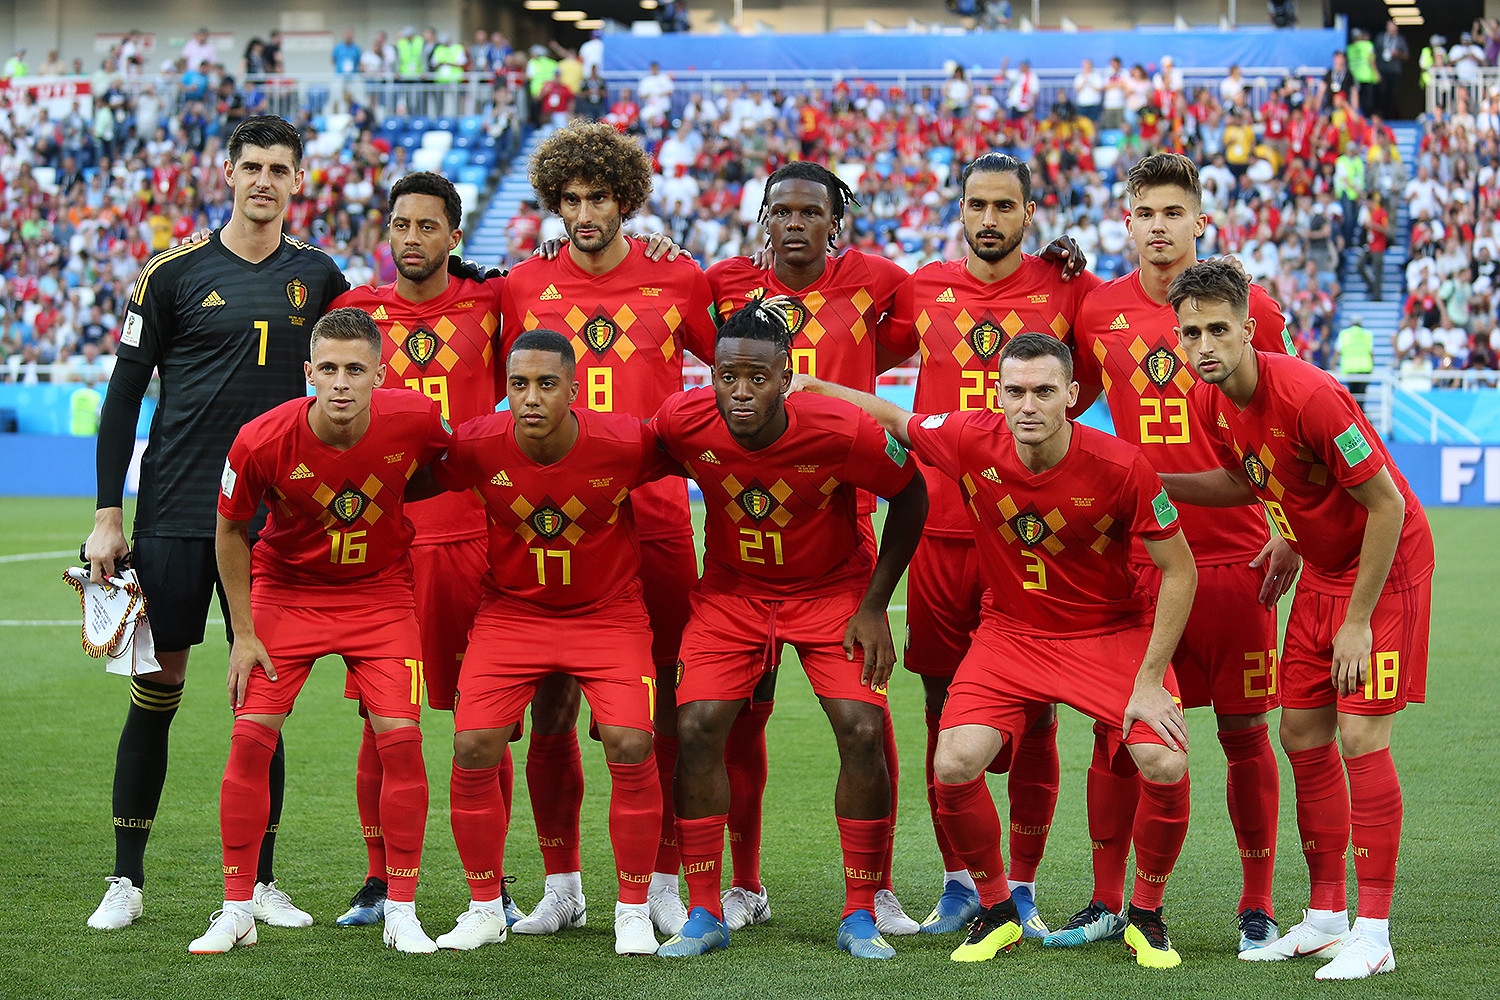 National team belgium at a glance: Cyprus vs Belgium Live TV Online Info- Where to Watch ...